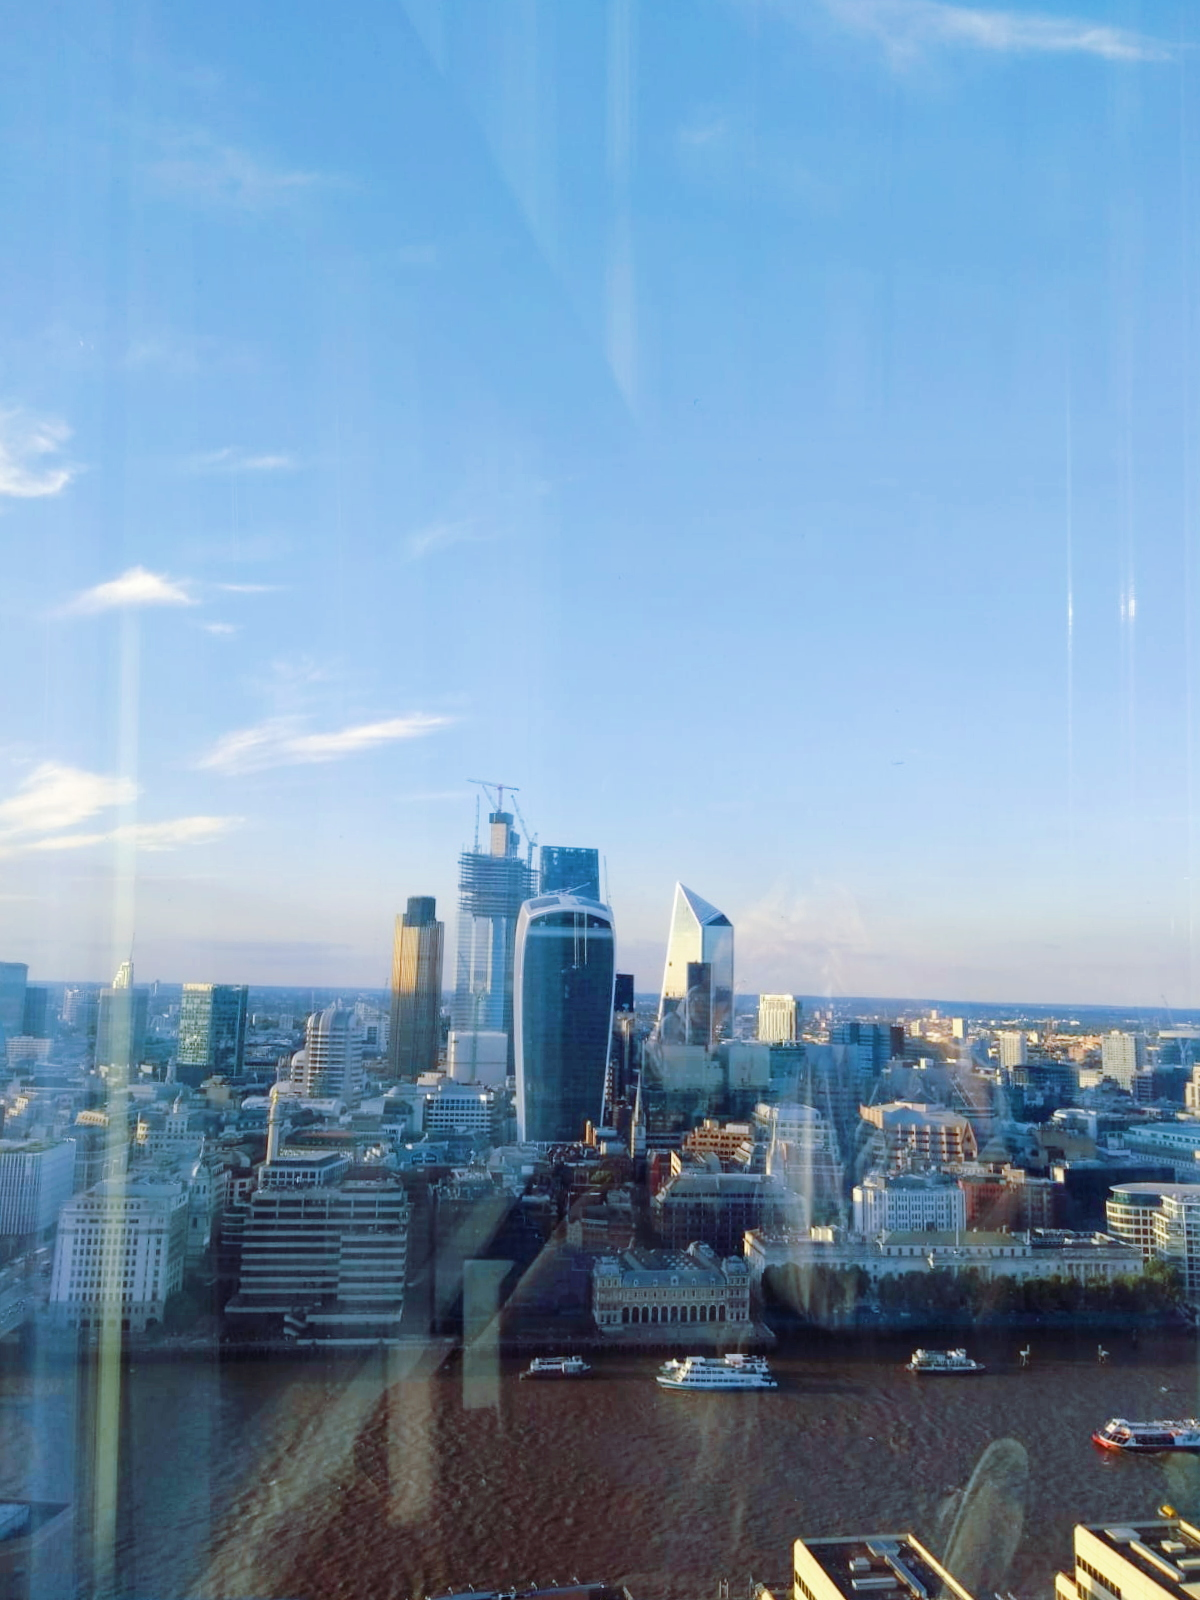 View of the Thames from the Shard near London Bridge